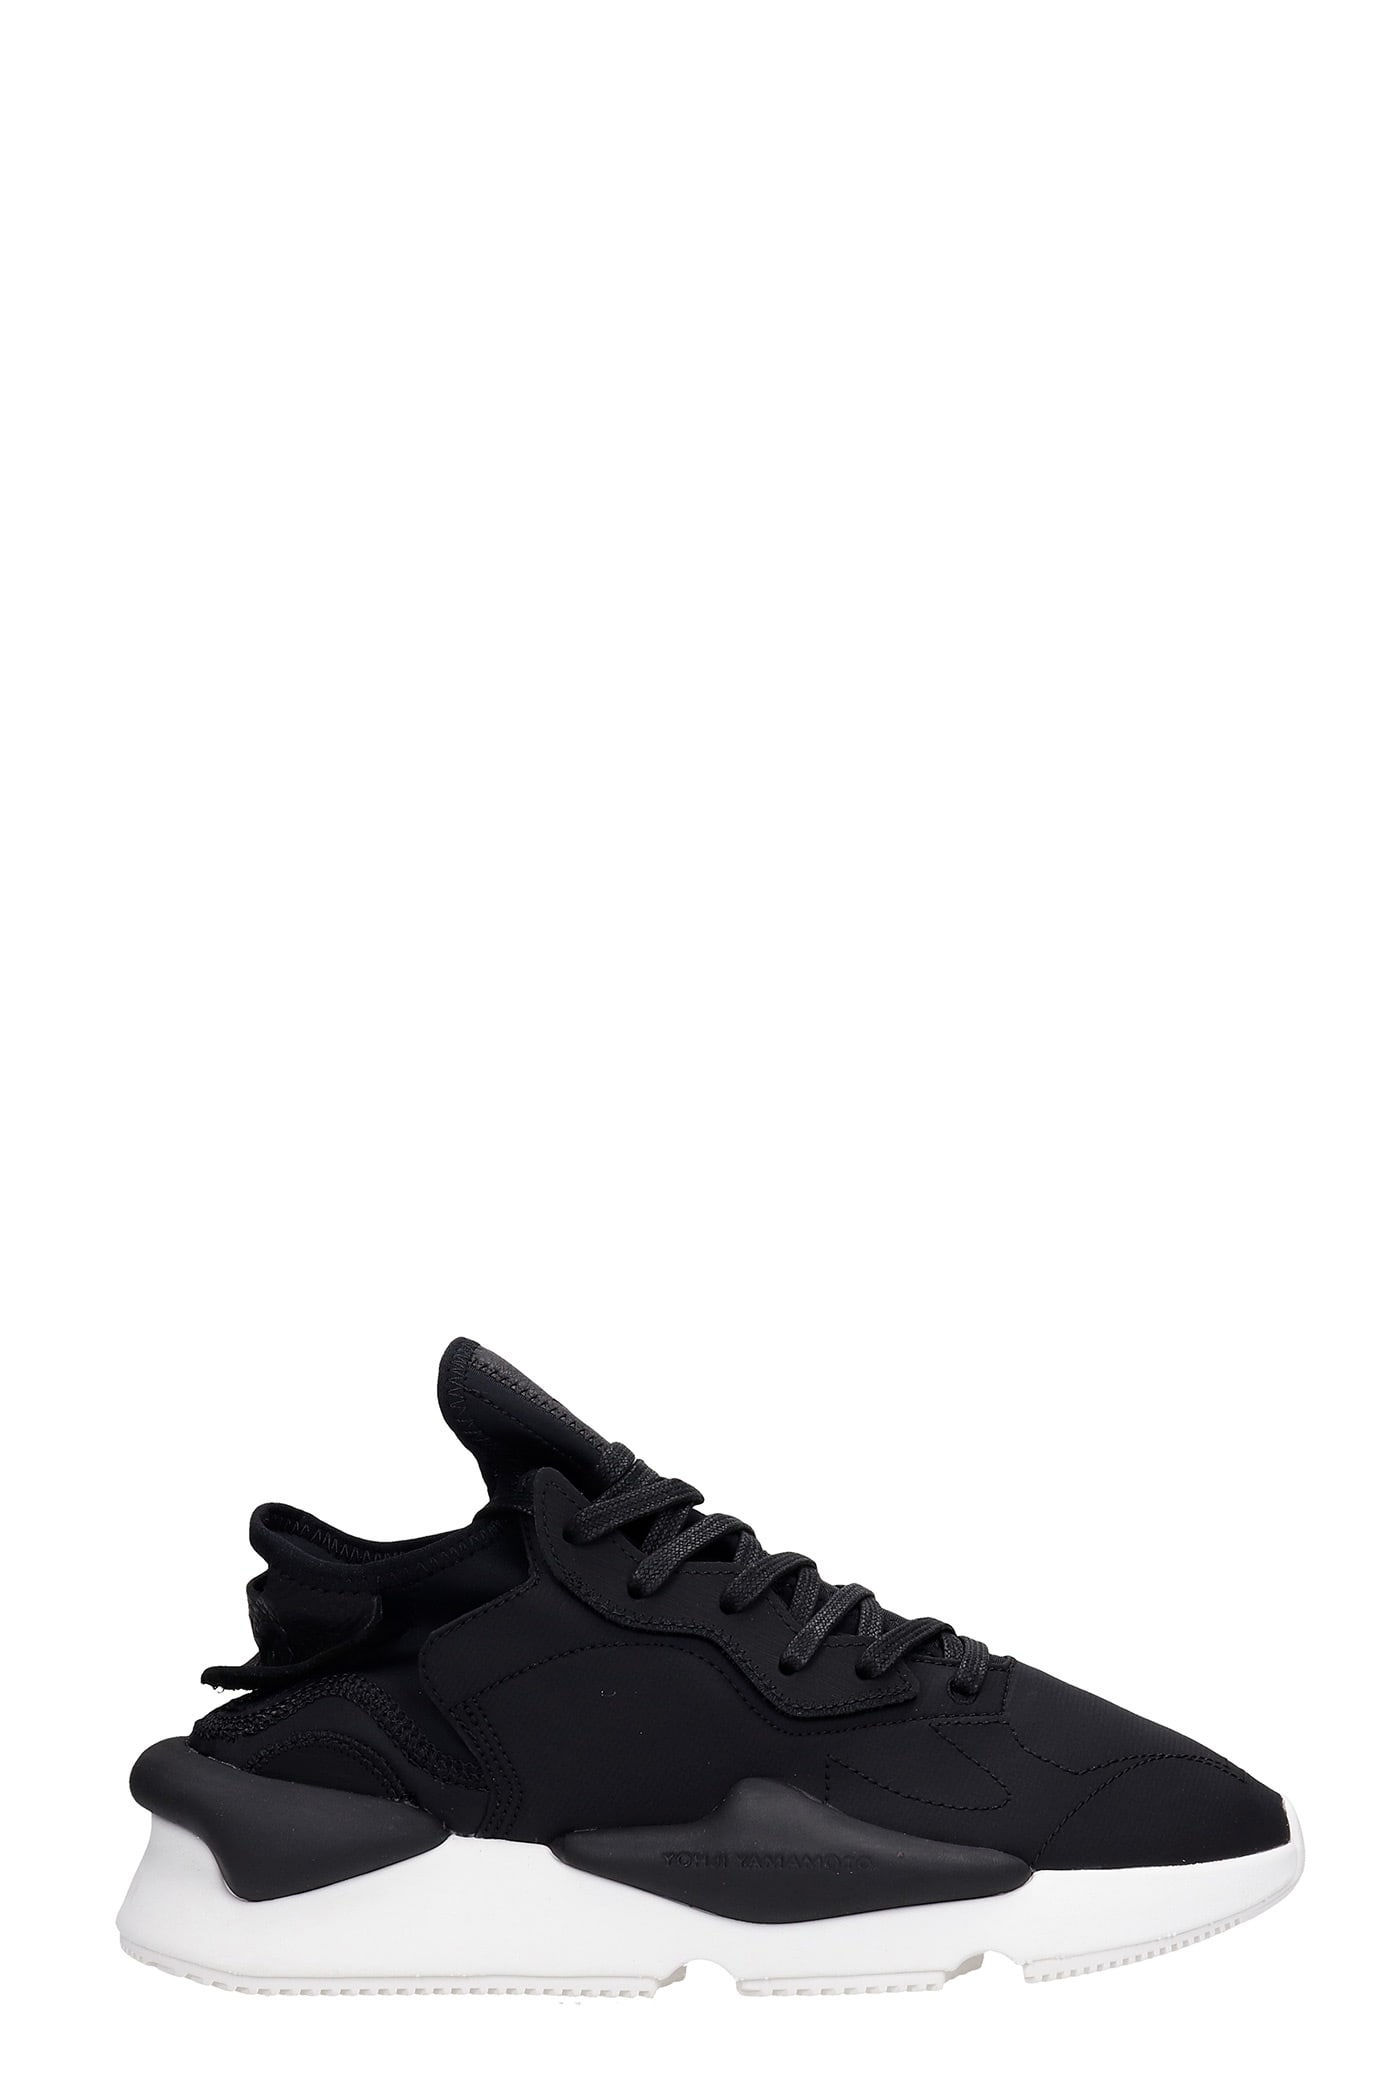 Y-3 Leathers KAIWA SNEAKERS IN BLACK SYNTHETIC FIBERS